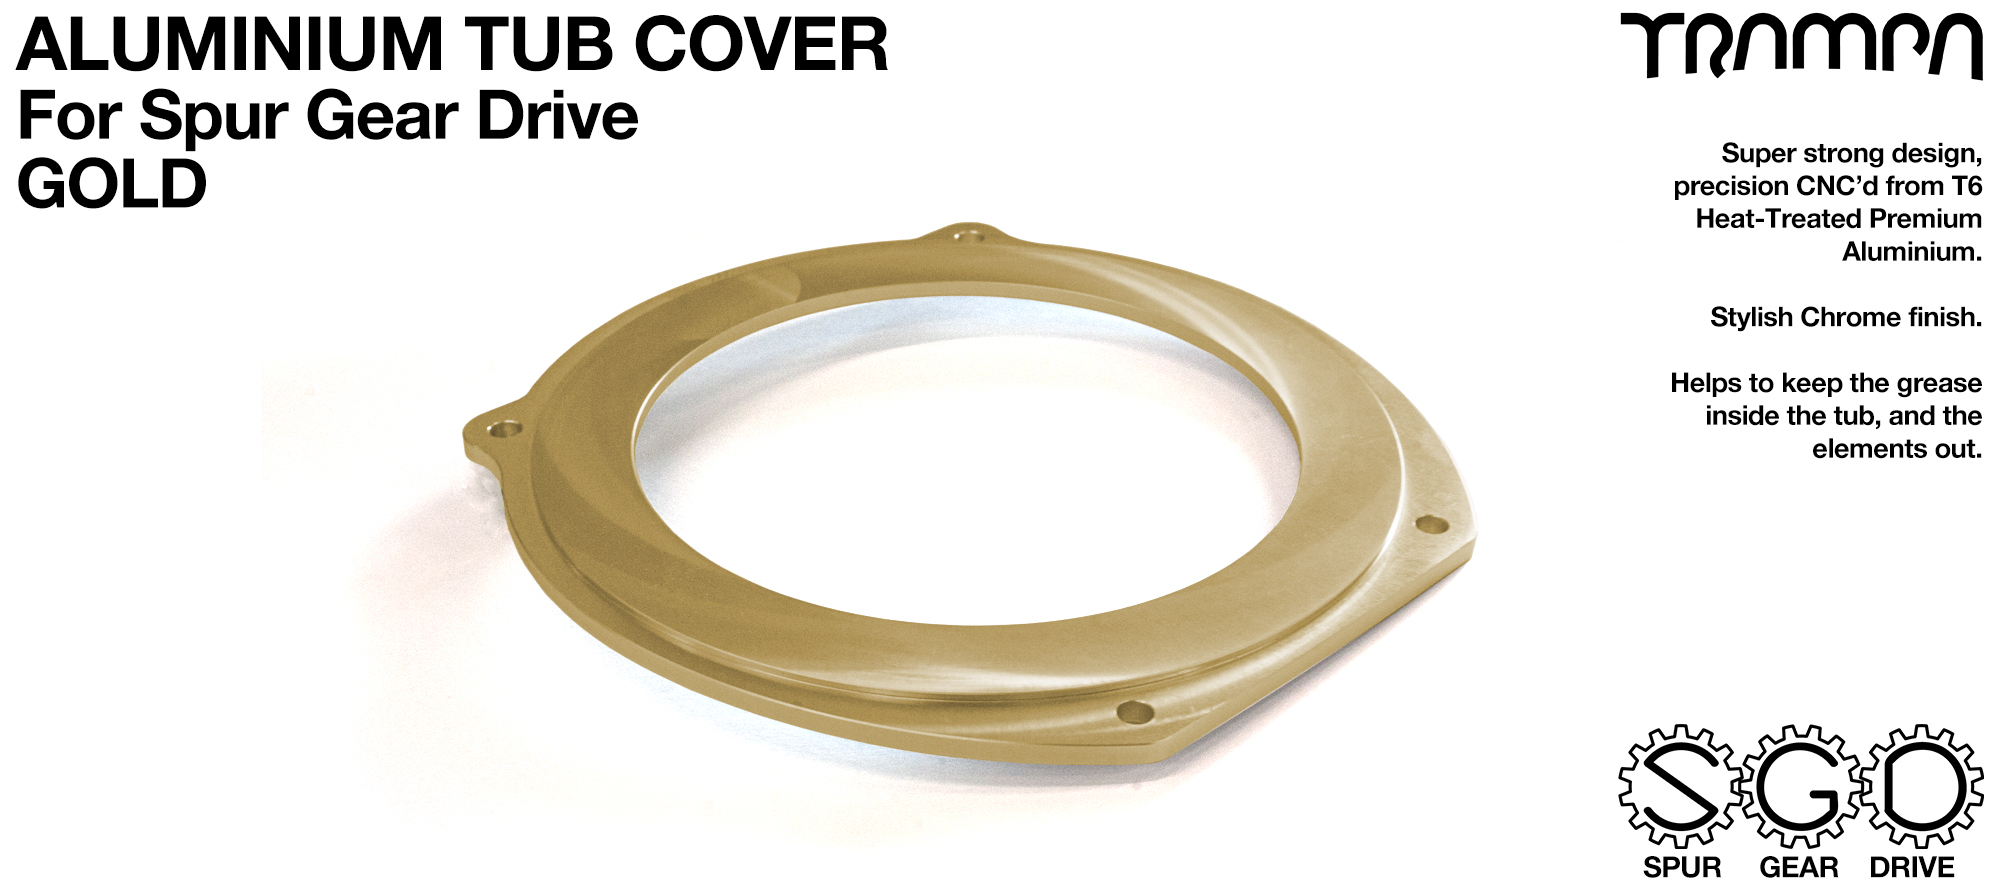 Spur Gear Drive Tub Cover - GOLD